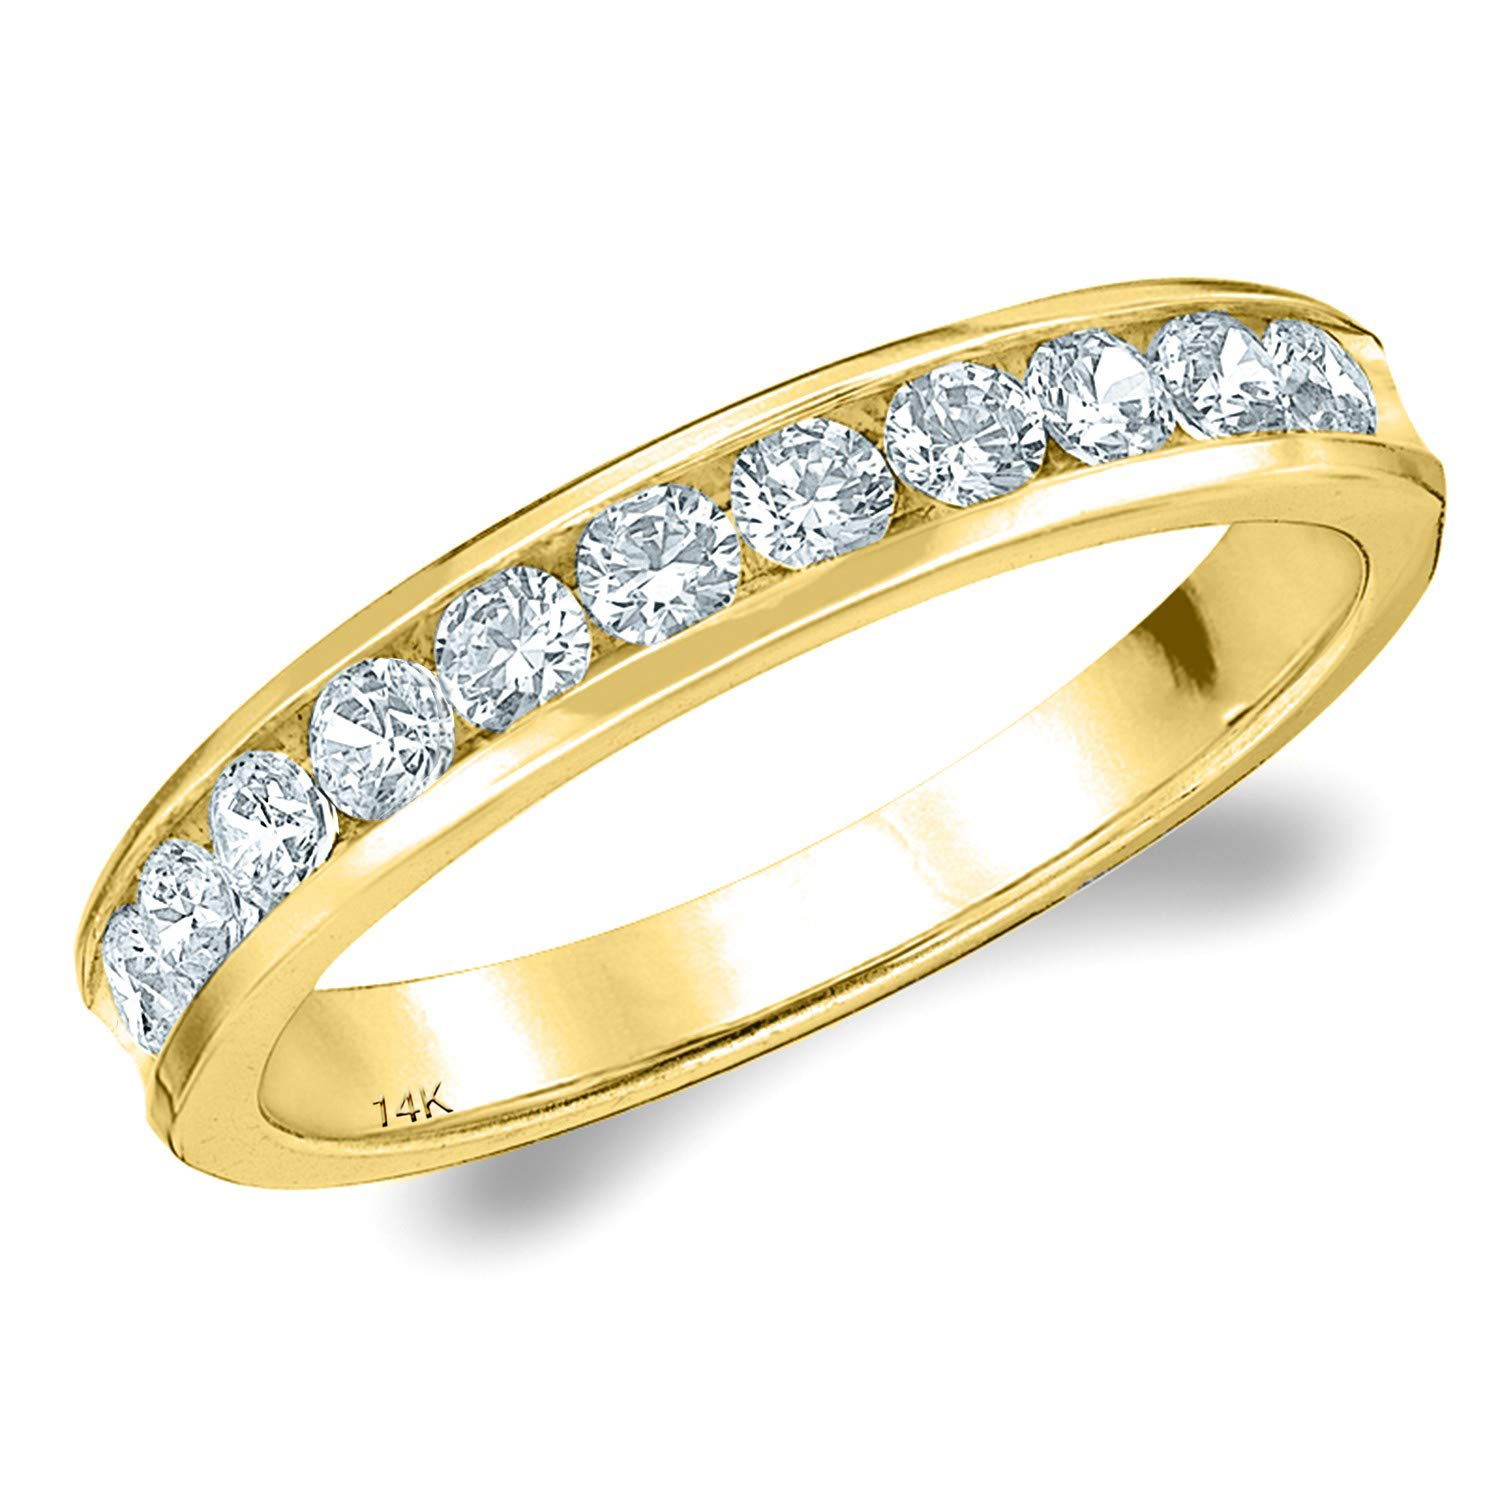 .50CT Symphony Channel Set Diamond Wedding Ring in 14K Yellow Gold - Finger Size 4.5 by Eternity Wedding Bands